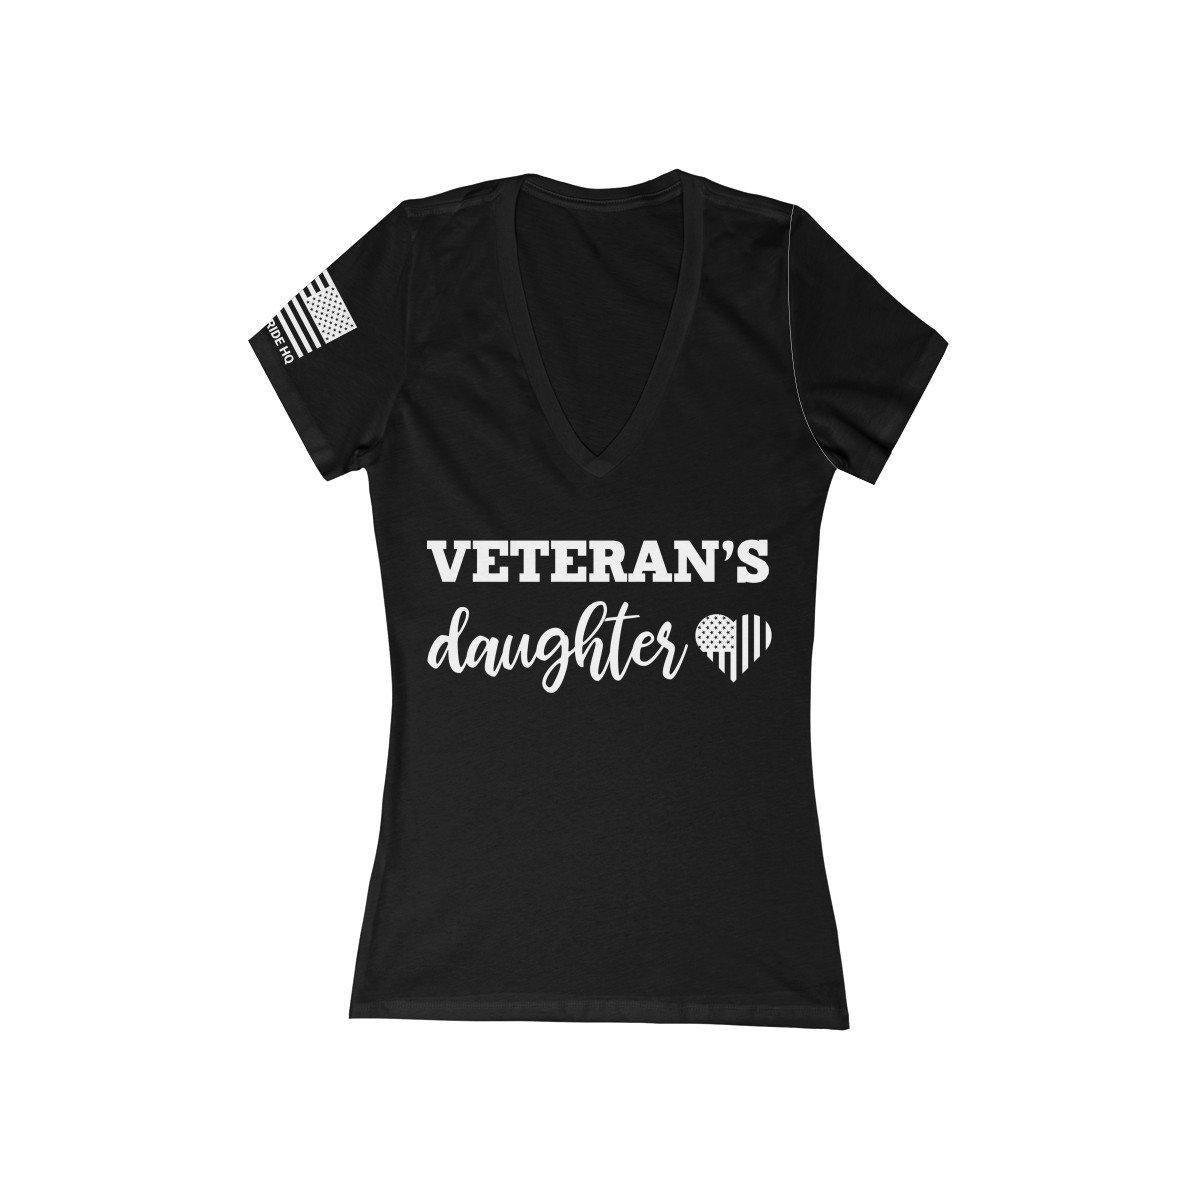 Veteran's Daughter Women's V-Neck Tee